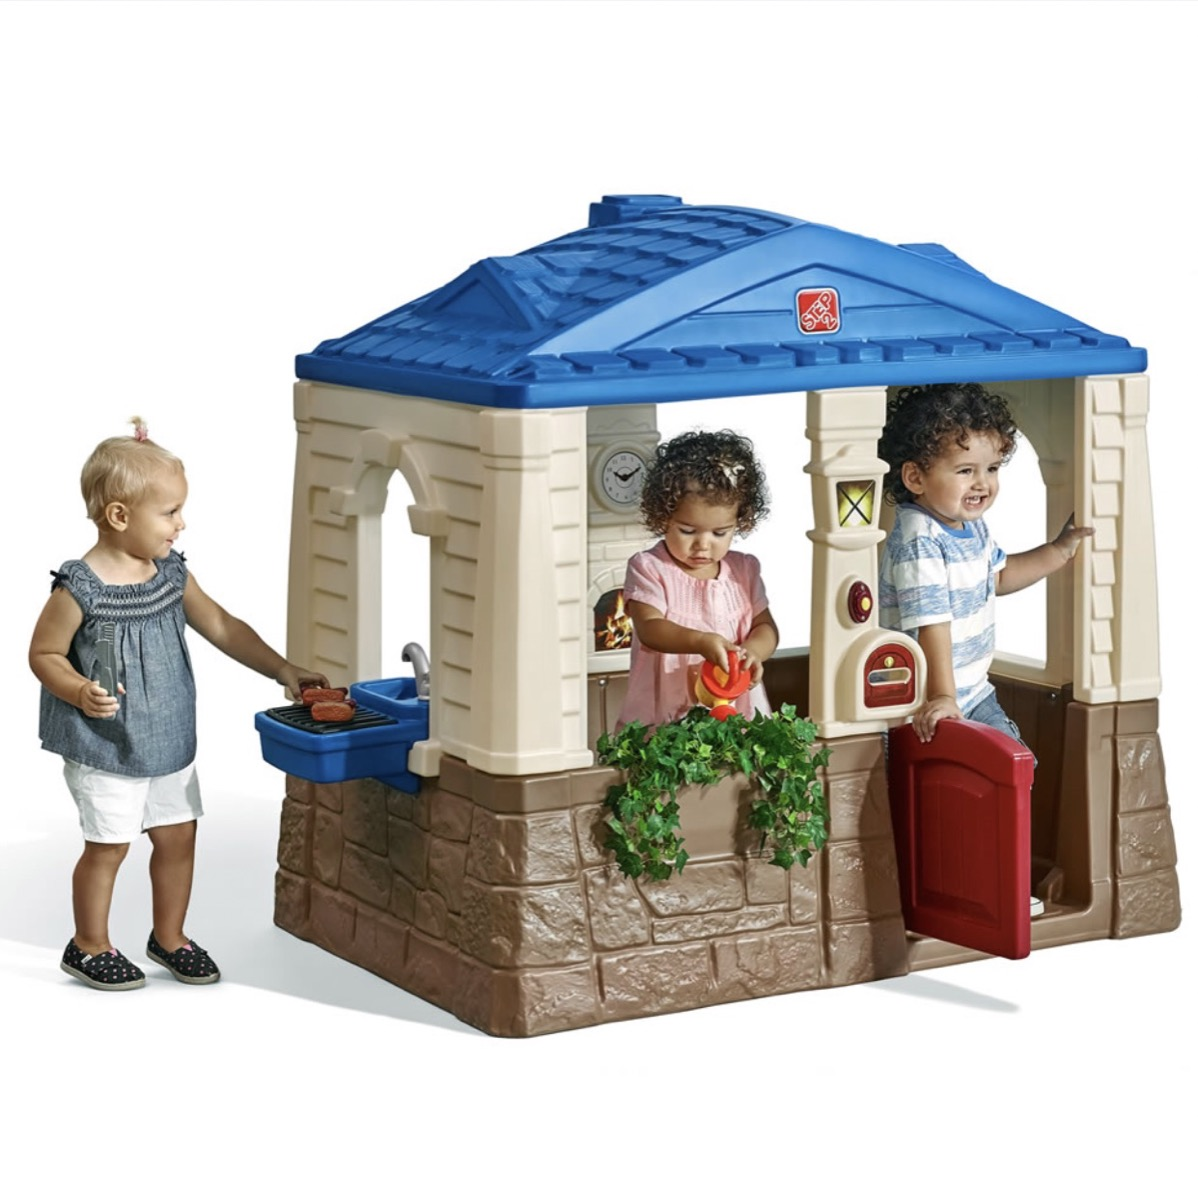 three children playing in a plastic outdoor playhouse